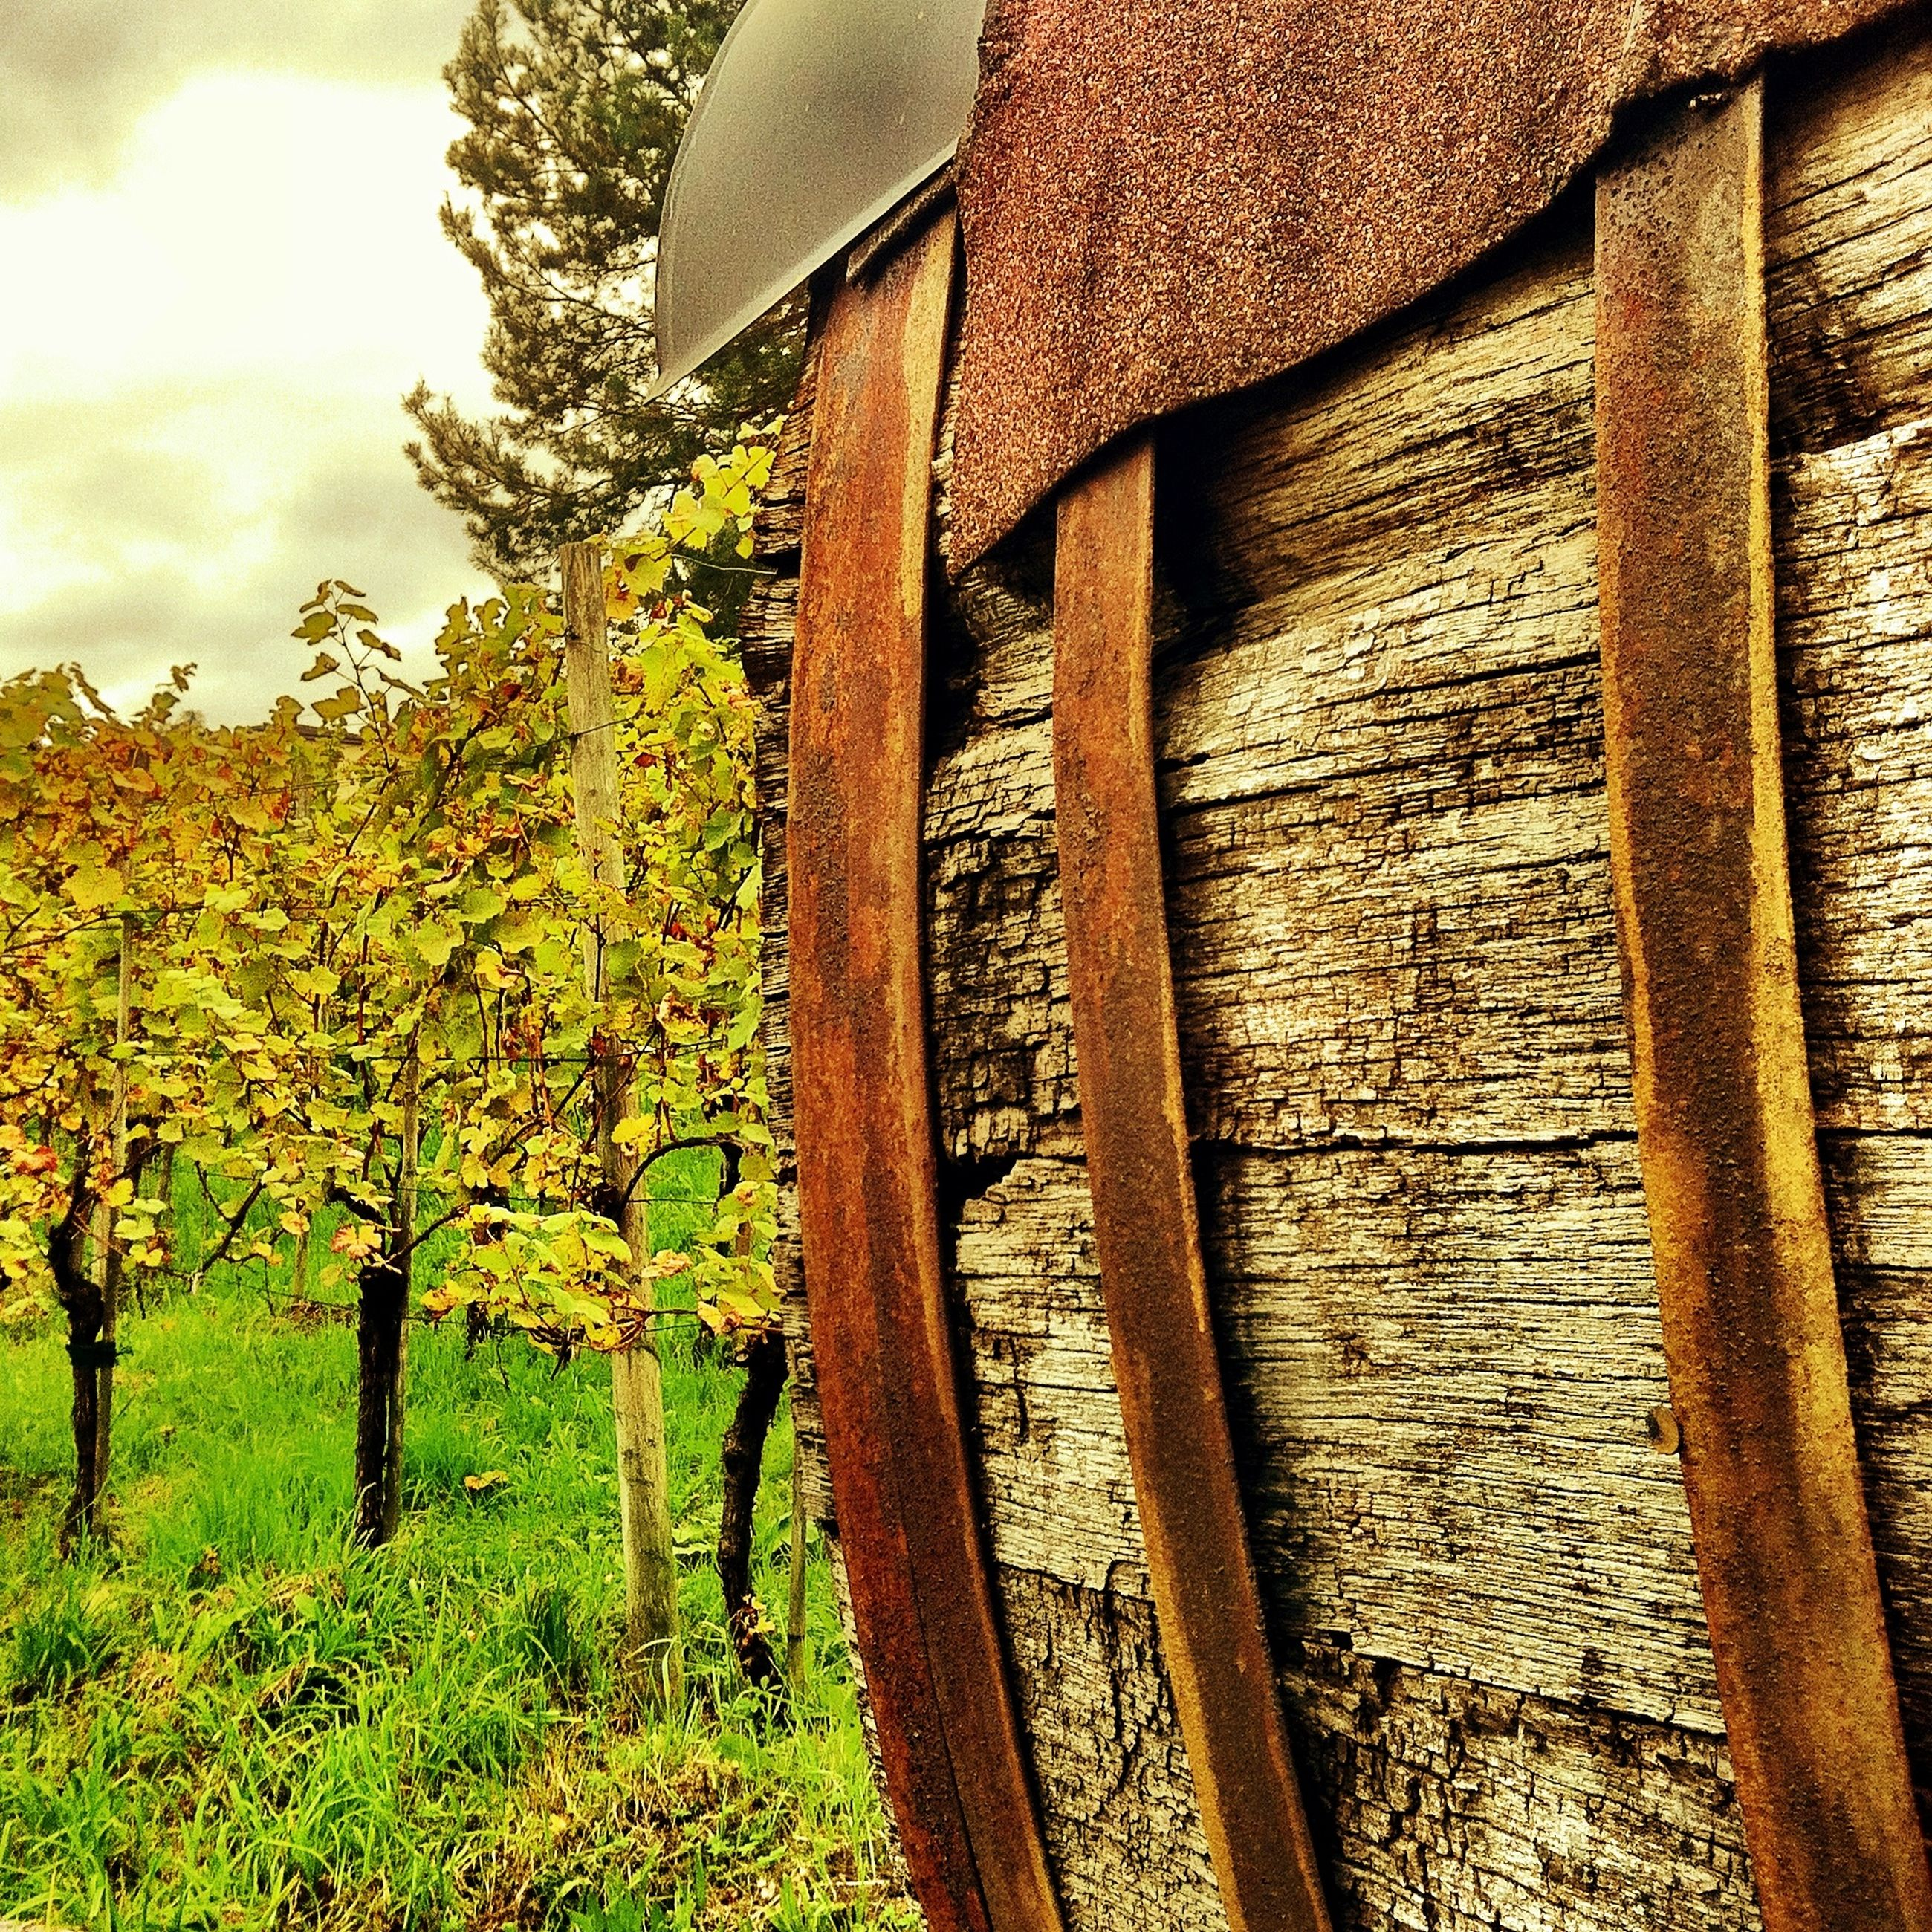 wood - material, field, growth, rural scene, wooden, tree, day, agriculture, nature, built structure, outdoors, sunlight, plant, no people, fence, wood, house, sky, close-up, farm